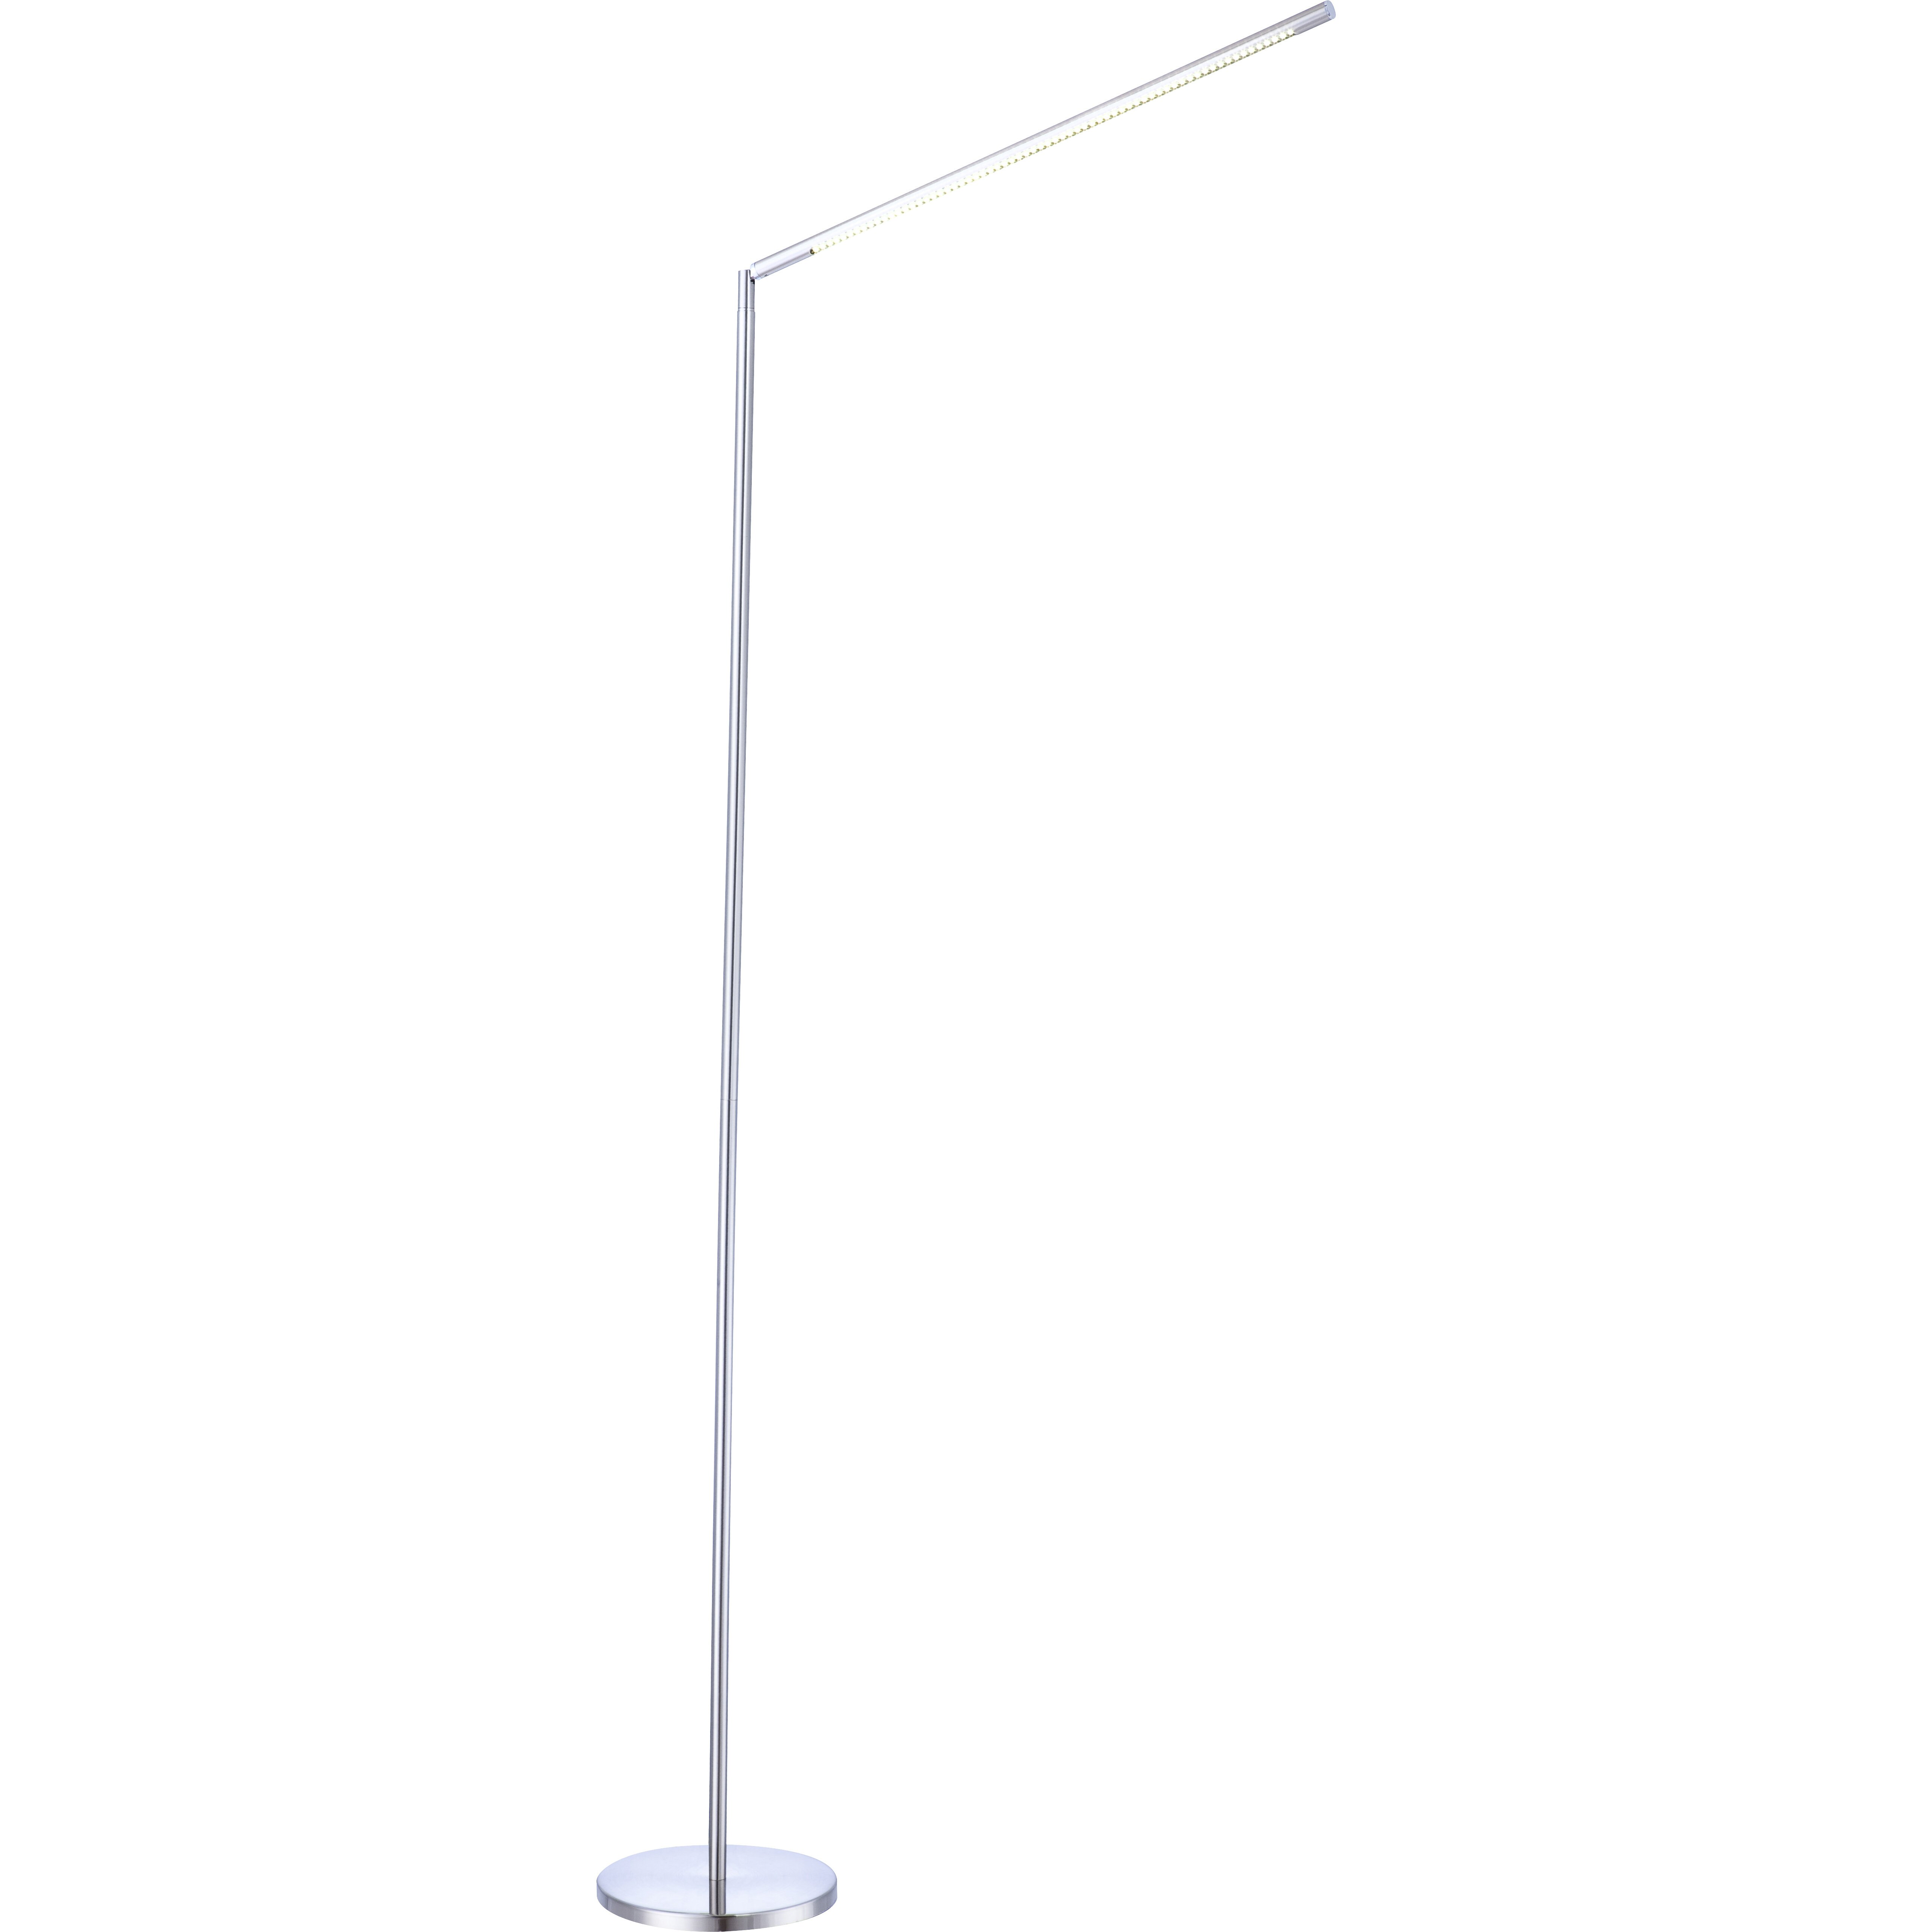 House additions outdoor lights 197cm reading floor lamp for Reading floor lamp reviews